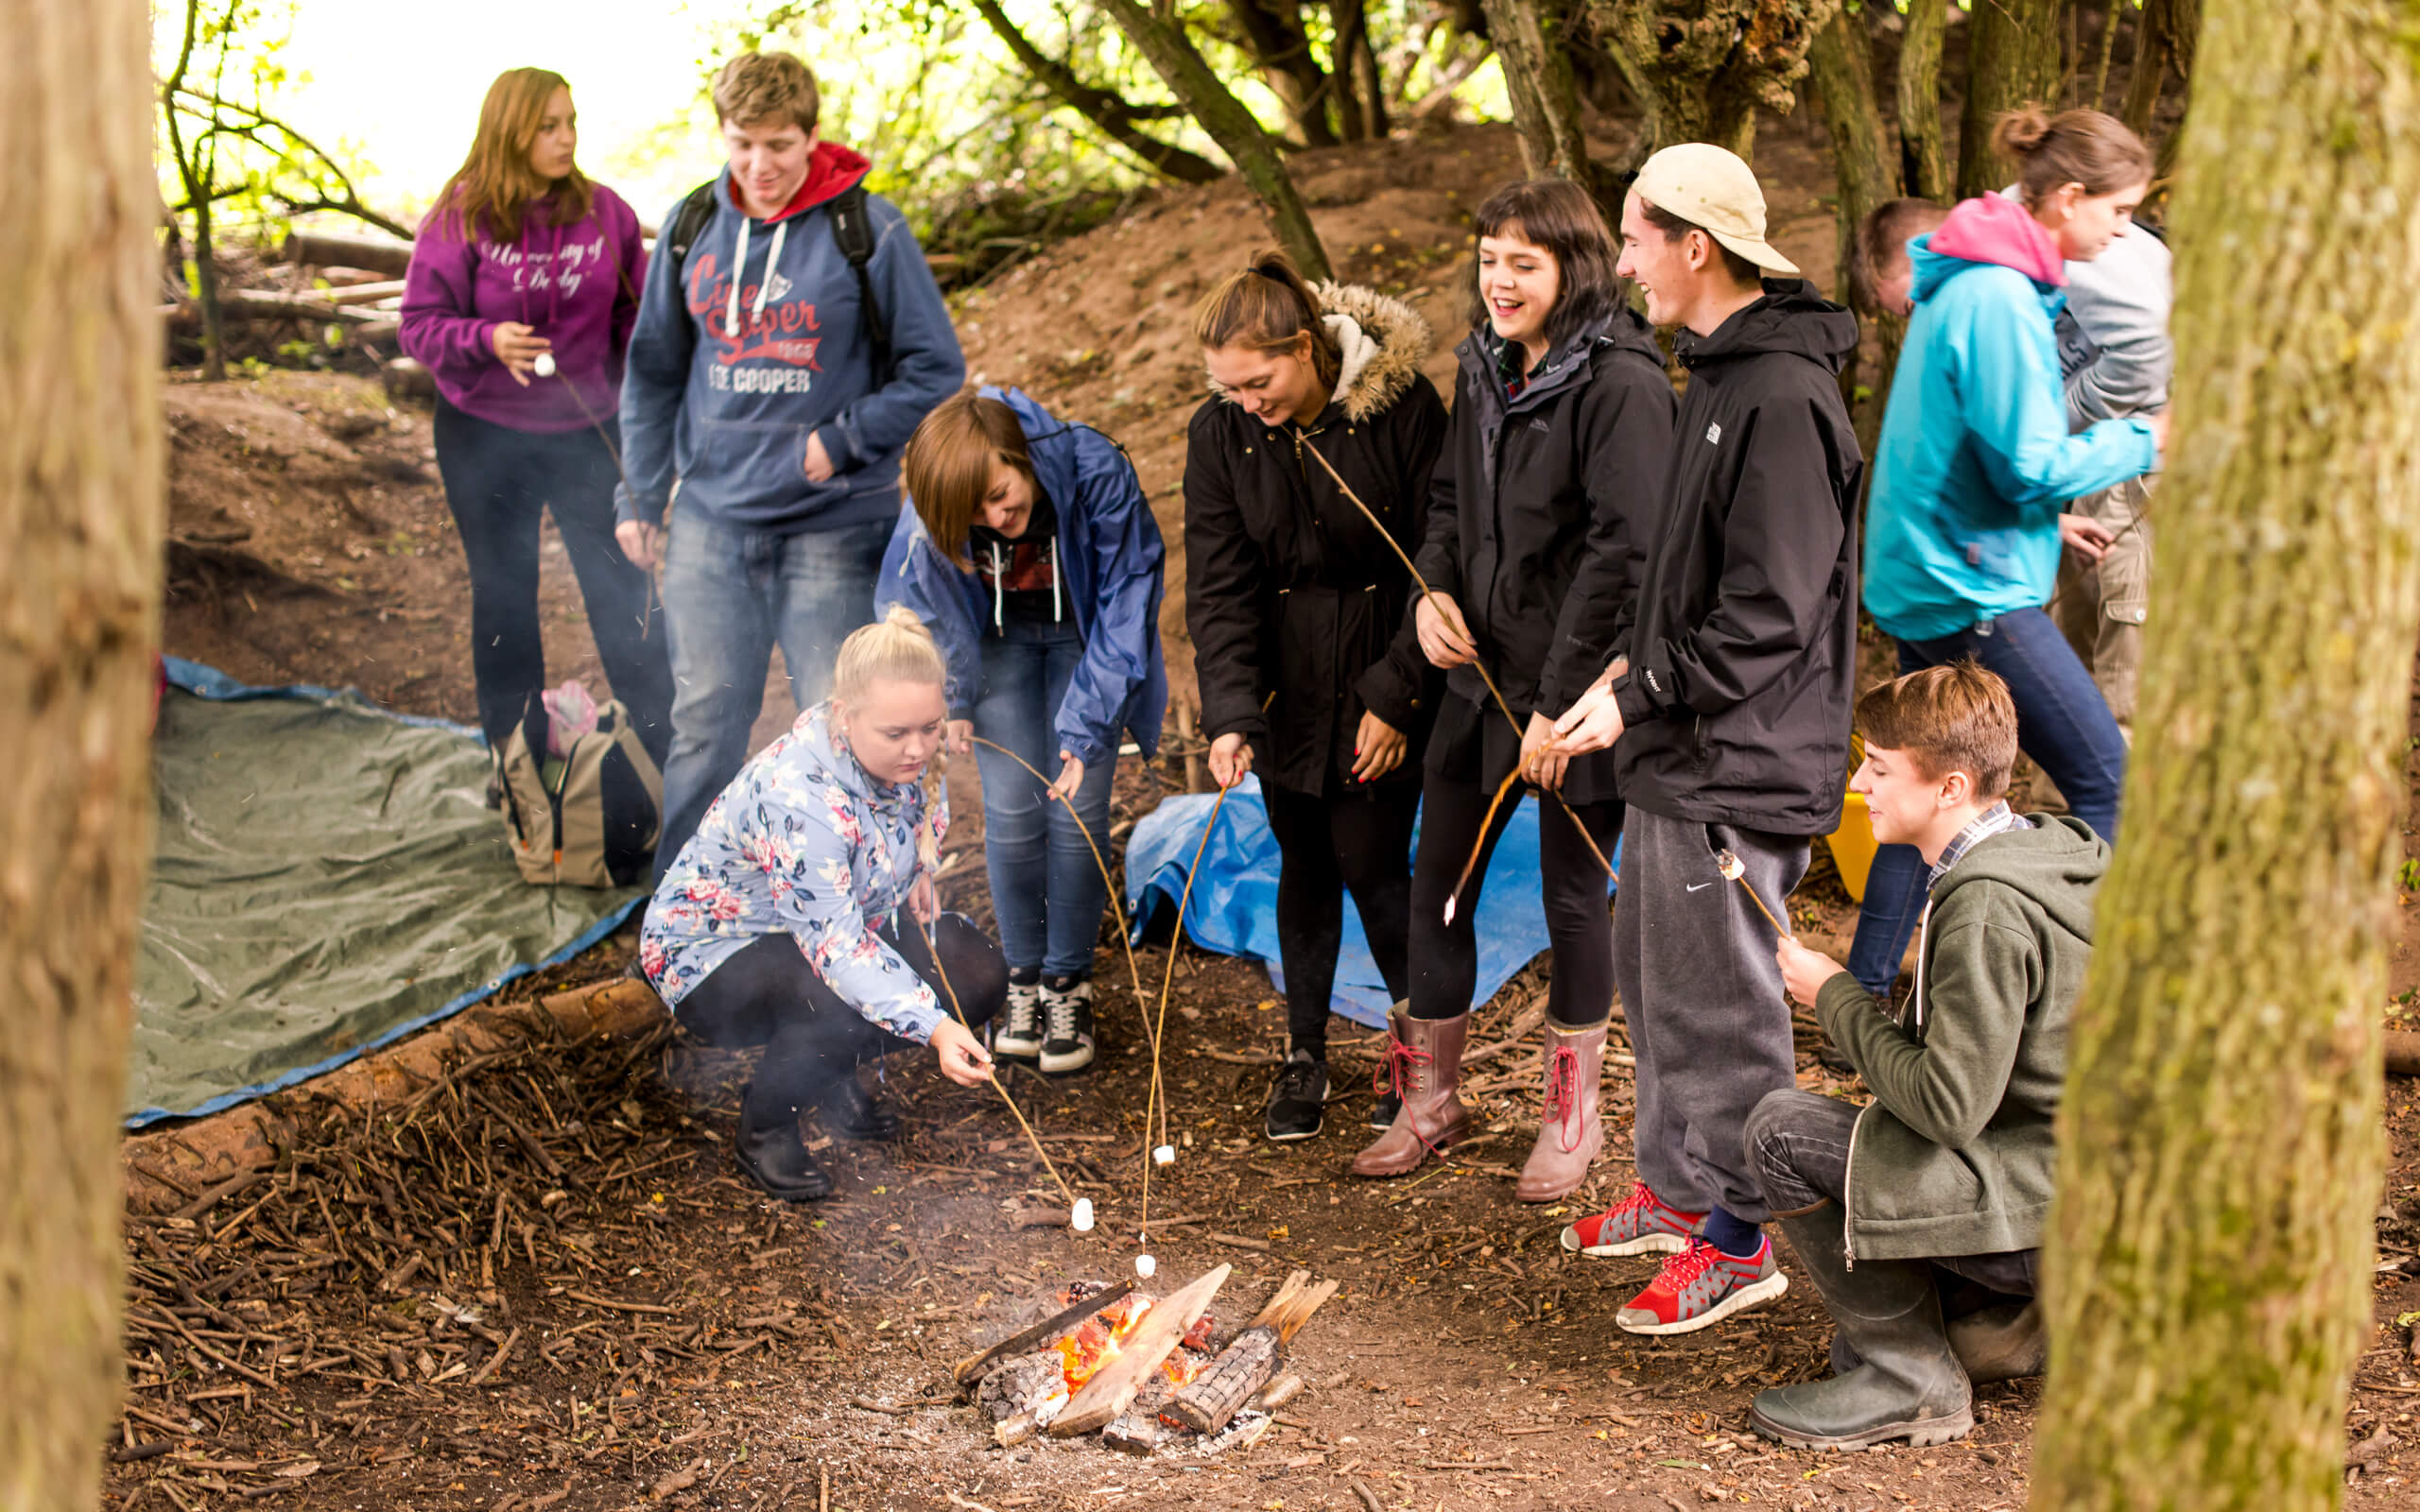 Group of young people in the woods around a fire